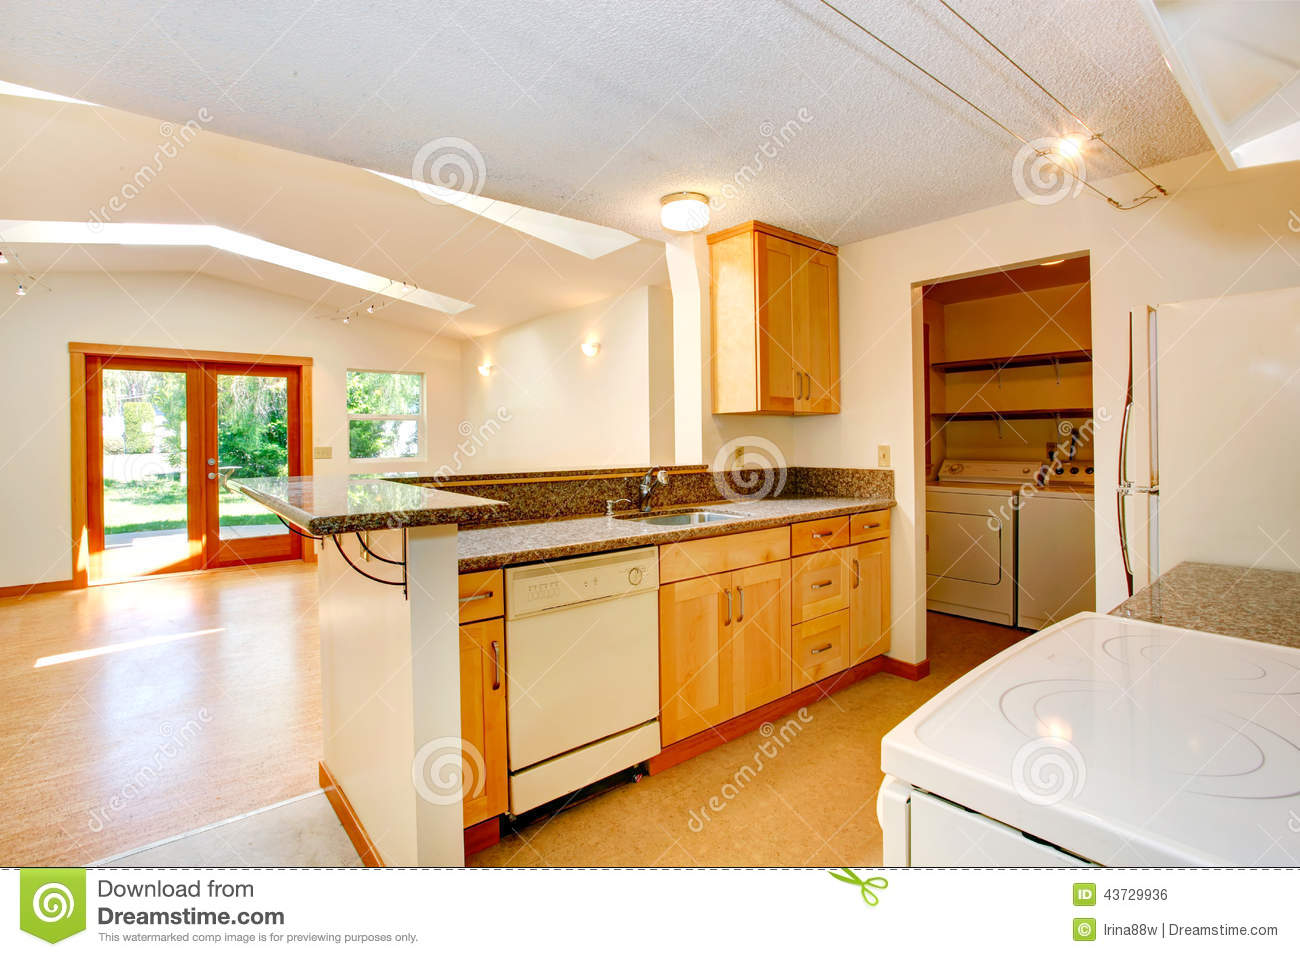 Kitchen Cabinets With Feet Empty House Interior With Open Floor Plan Living Room And